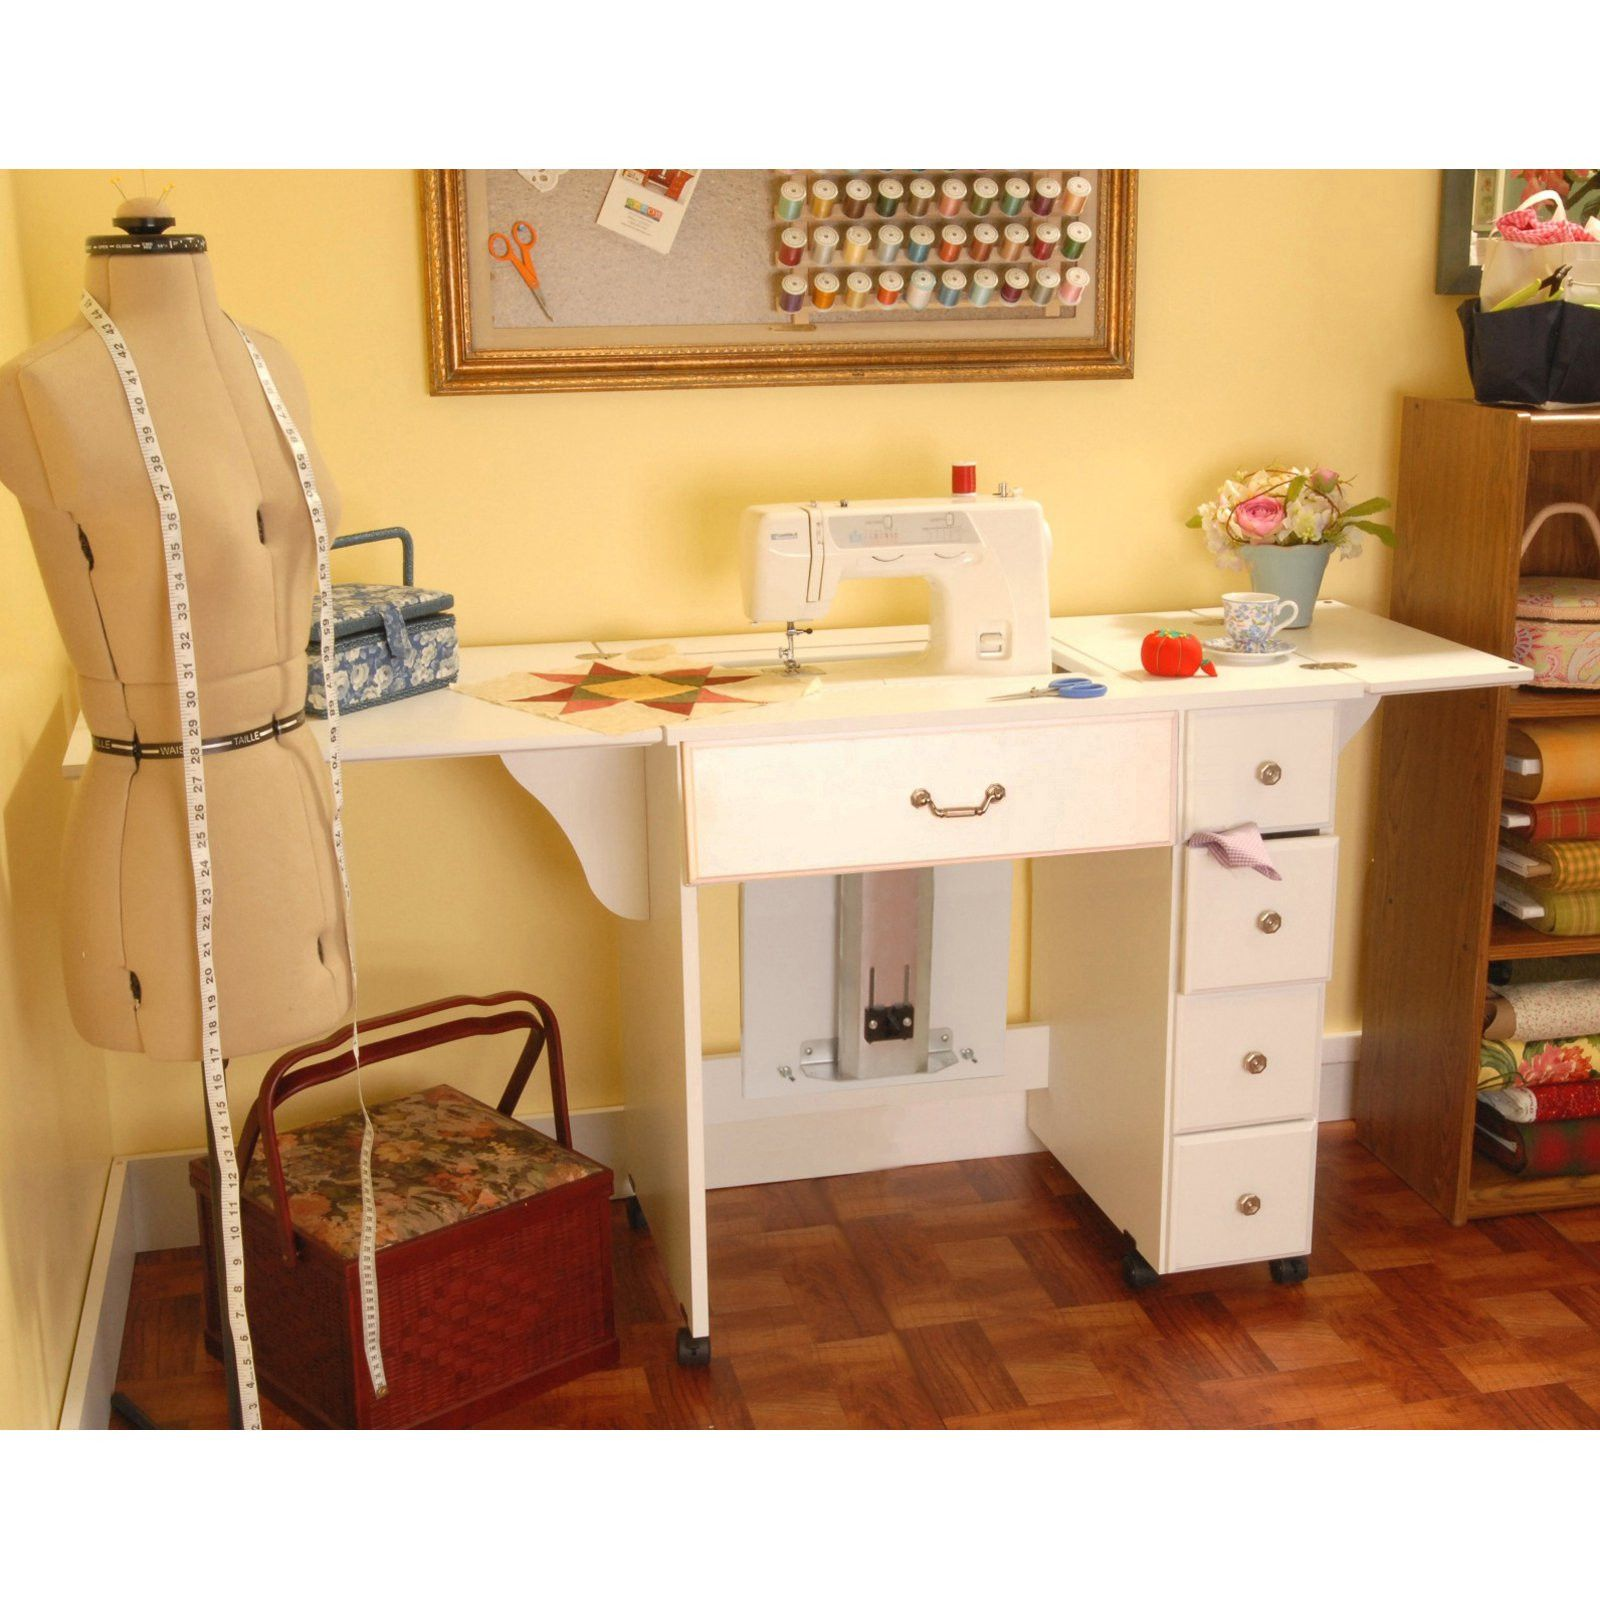 77 Sewing Machine Cabinets With Air Lift Kitchen Cabinet Inserts Ideas Check More At